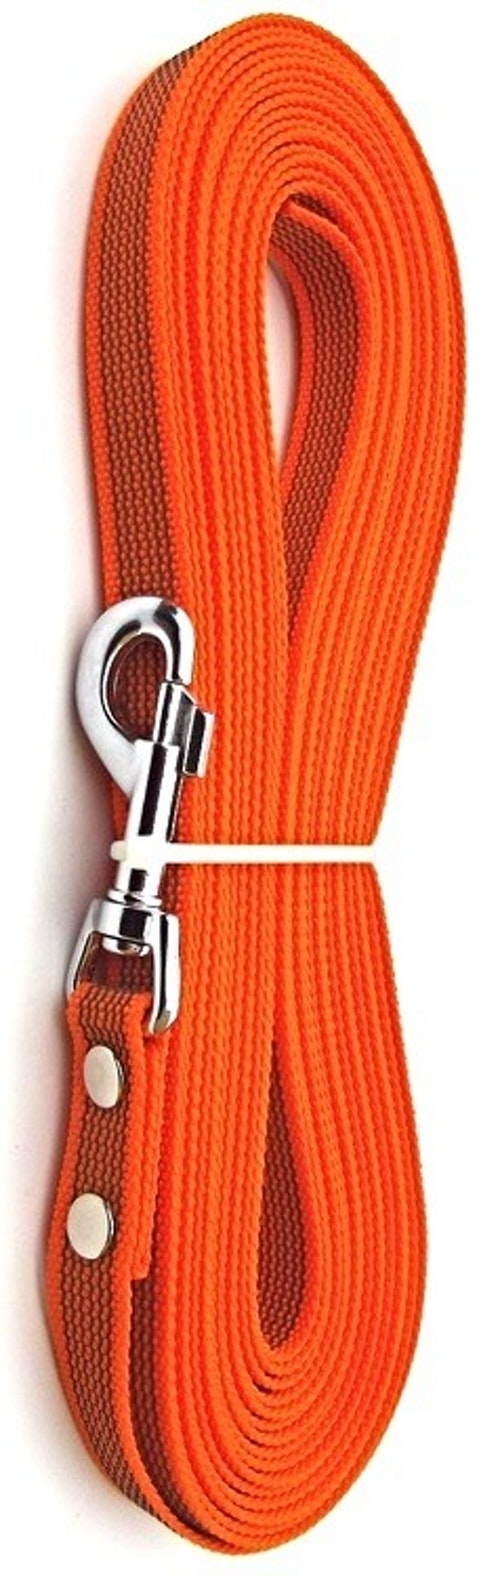 Antiglid koppel/lina 20 mm utan handtag, orange